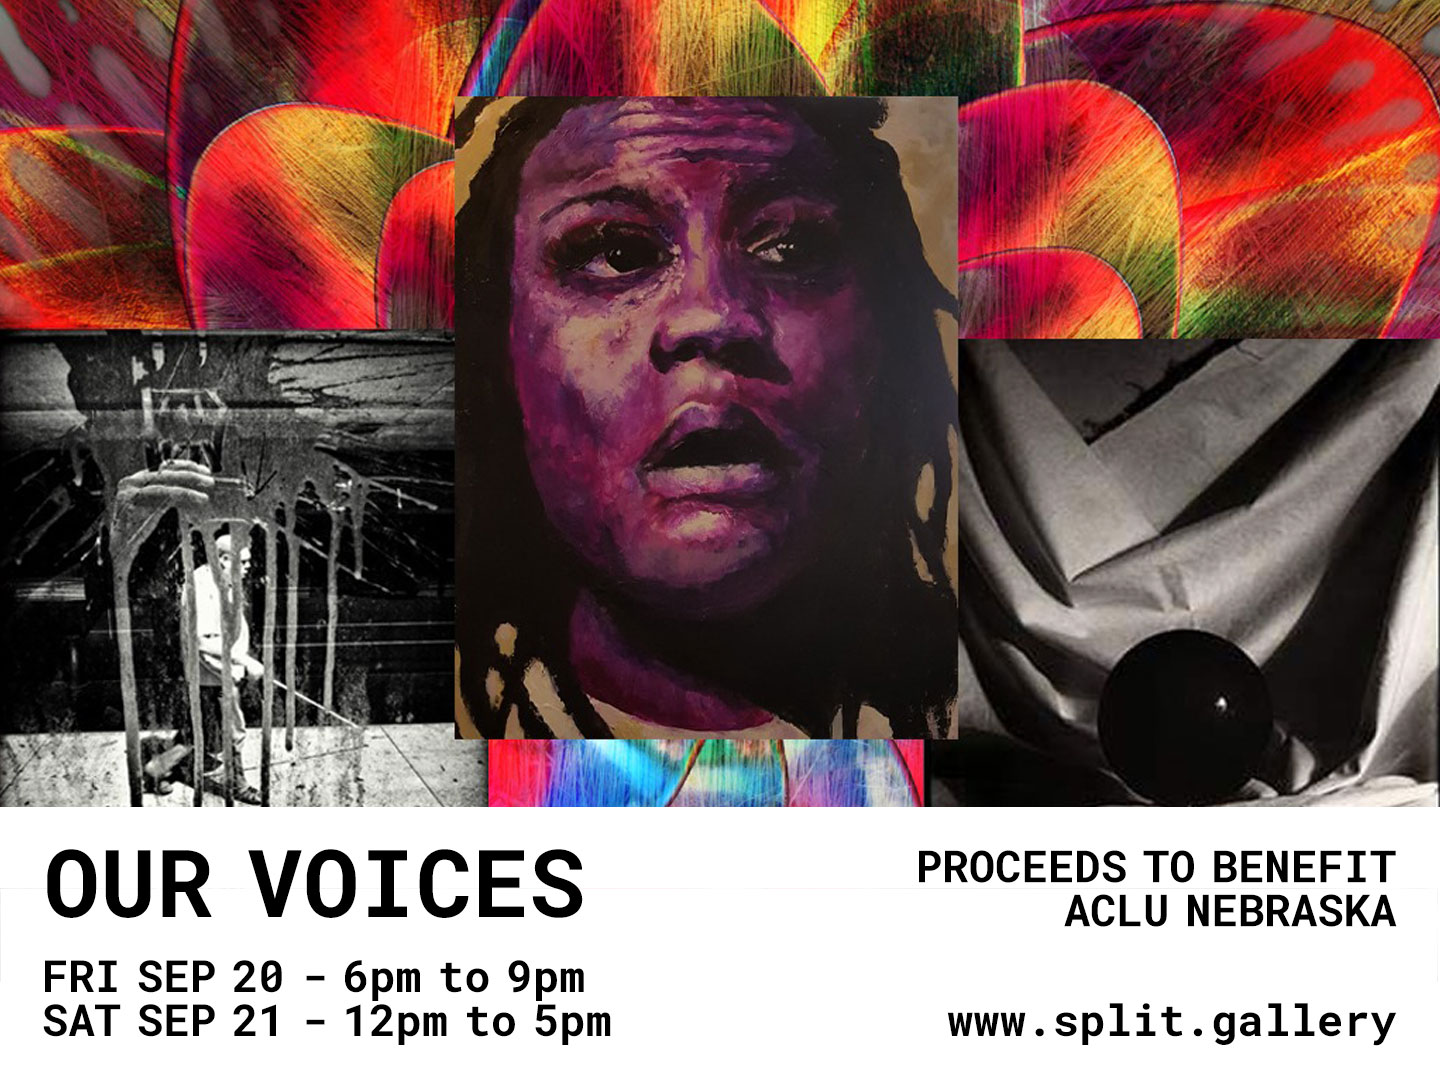 Our Voices at Split Gallery - Sept 20-21, 2019